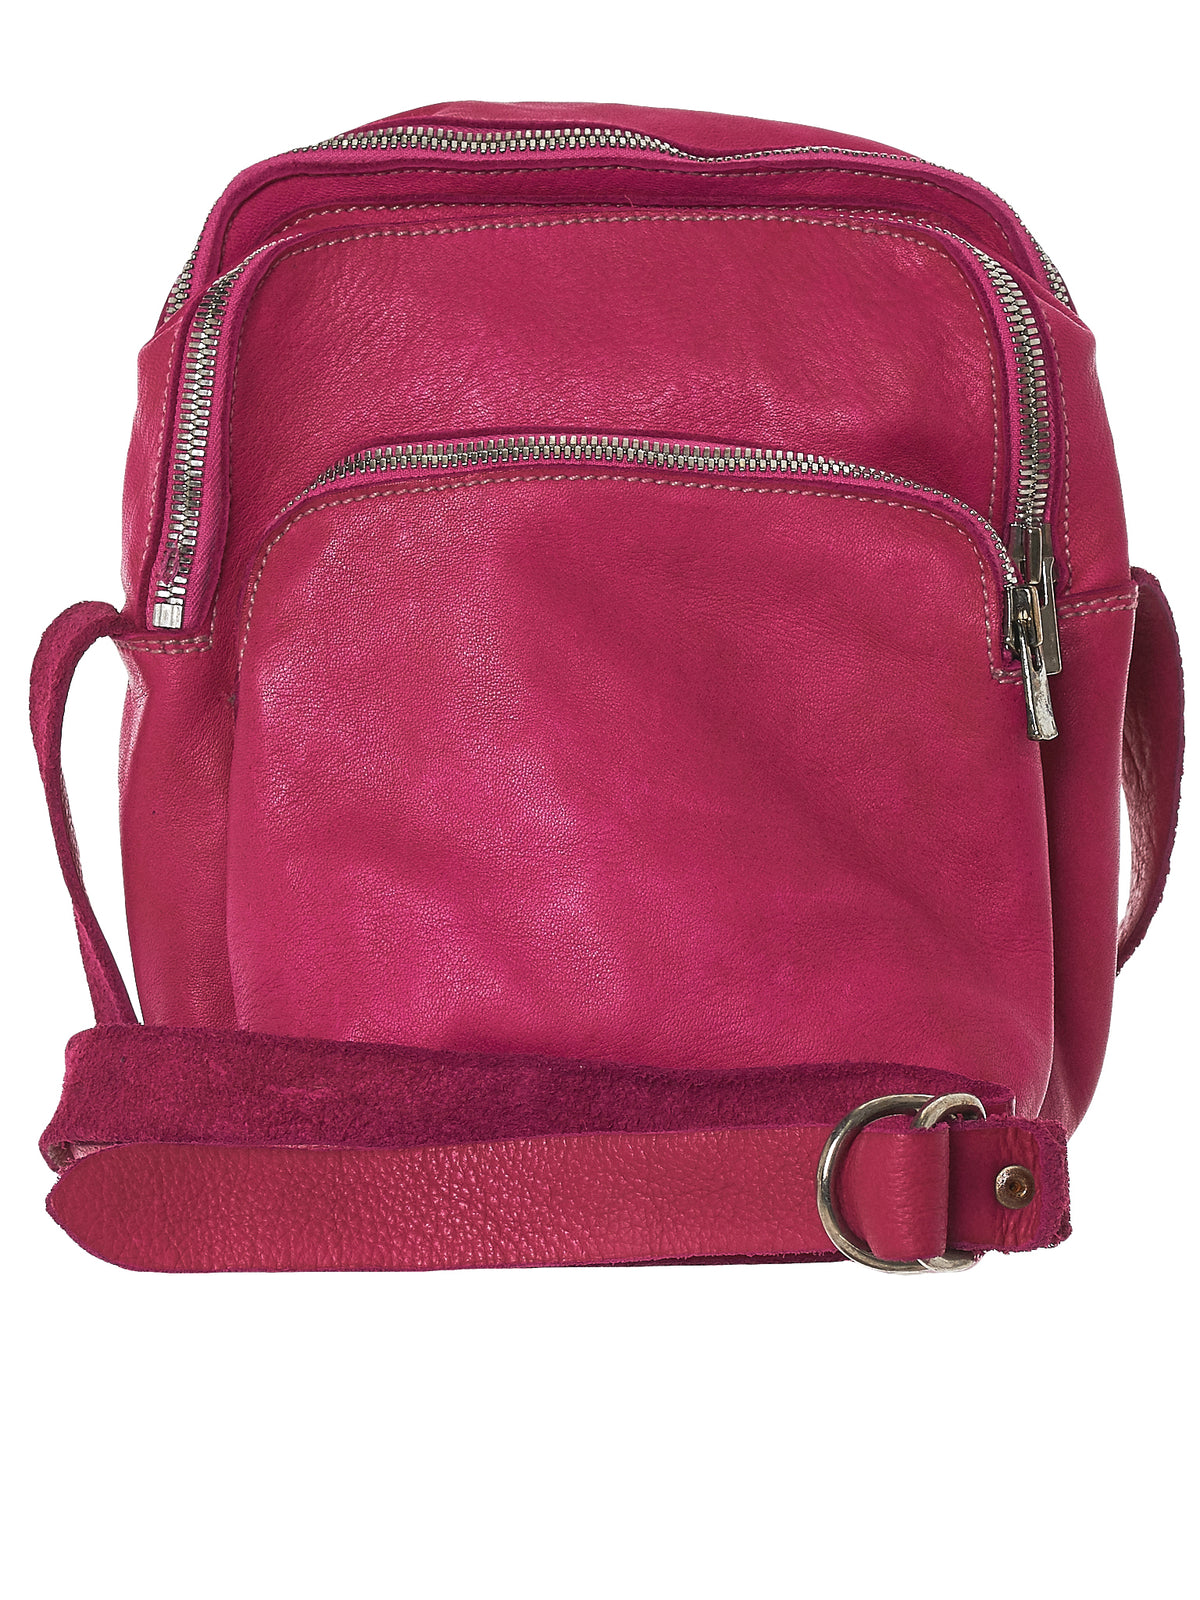 Object-Dyed Leather Bag (BR0-SOFT-HORSE-FG-CO38T)